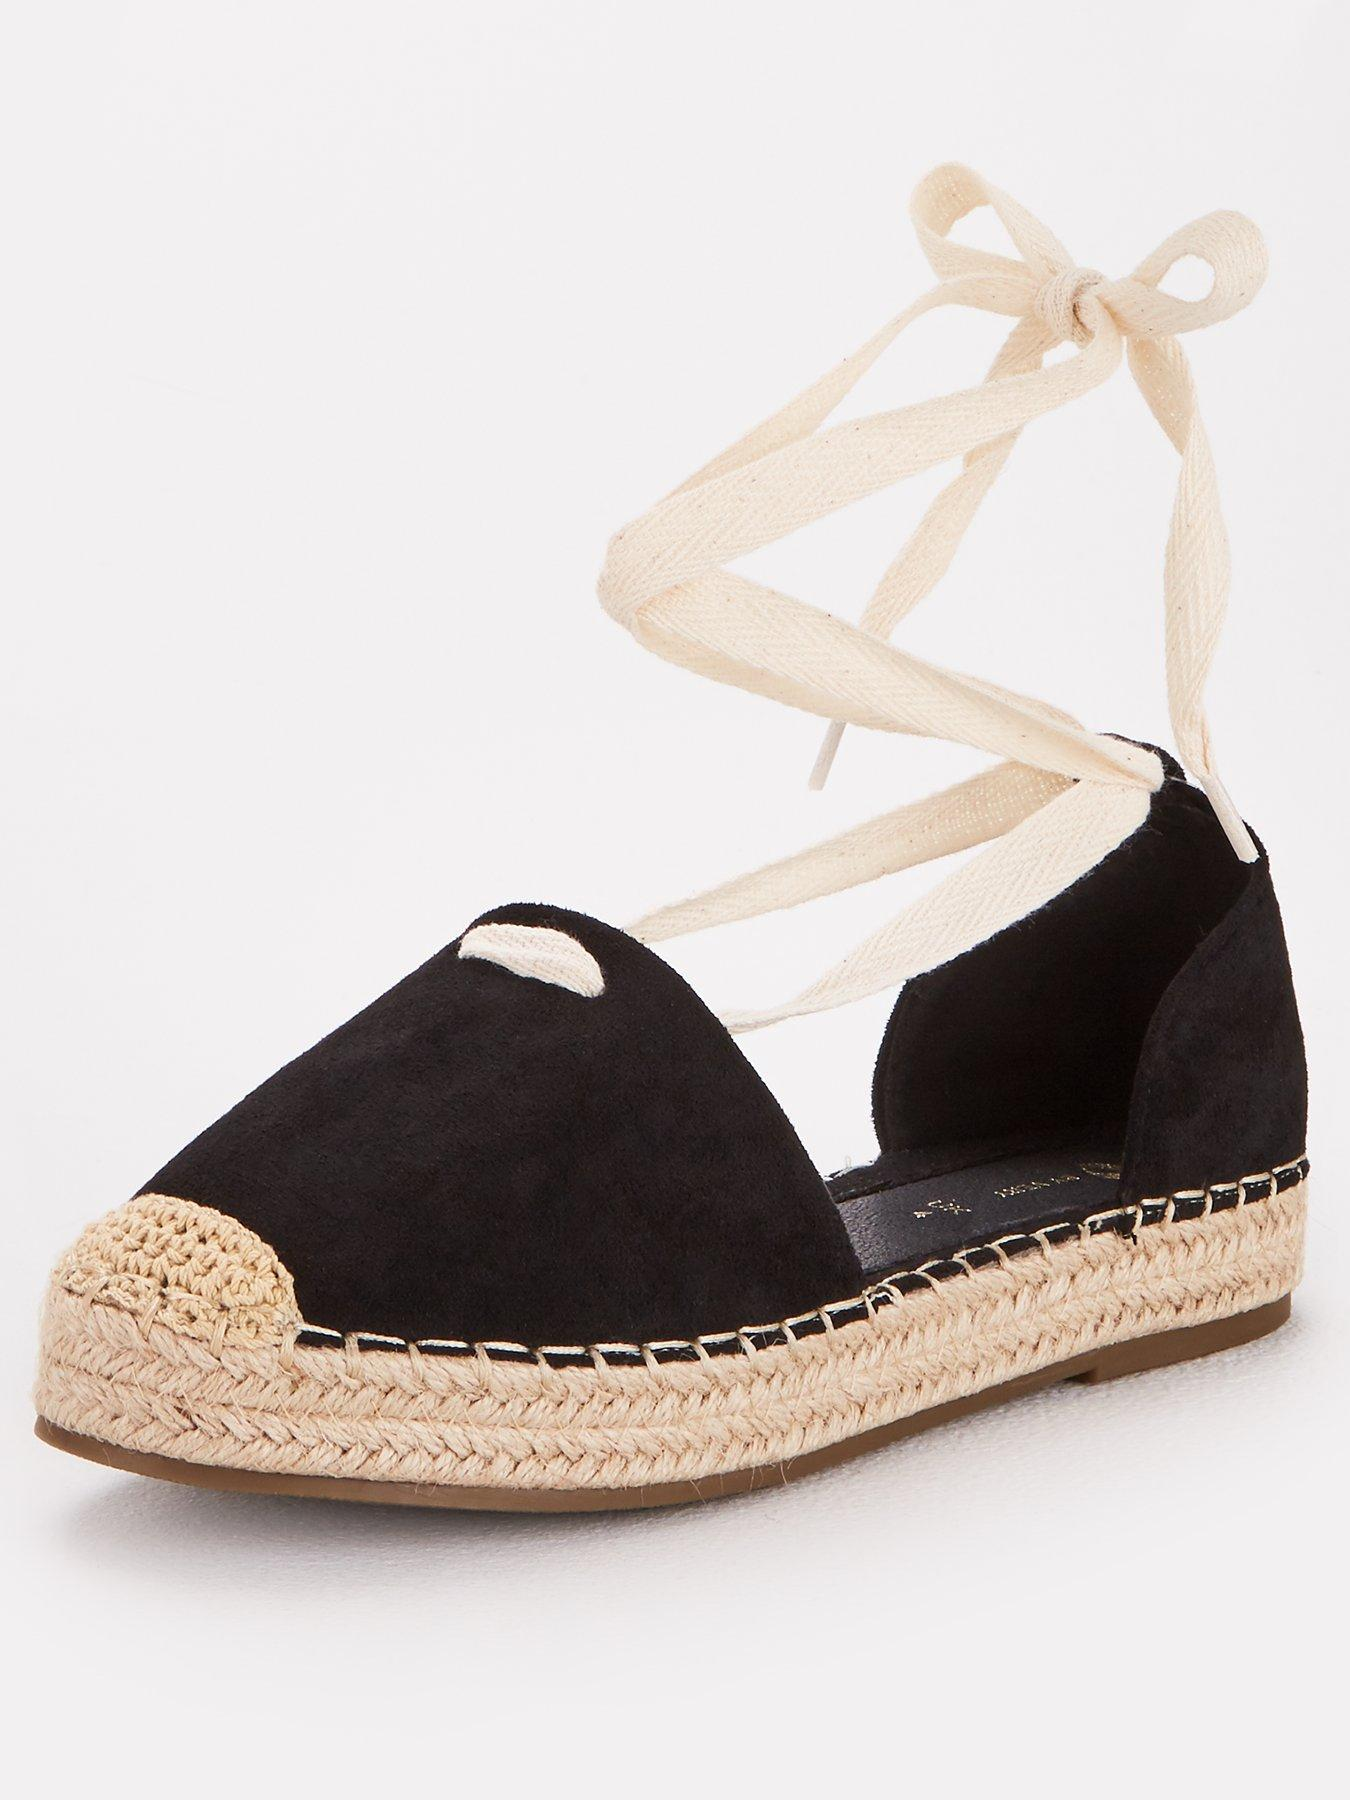 Boys FARAH Textured Logo Contoured Footbed Slider Sandals Sizes UK from 12 to 5